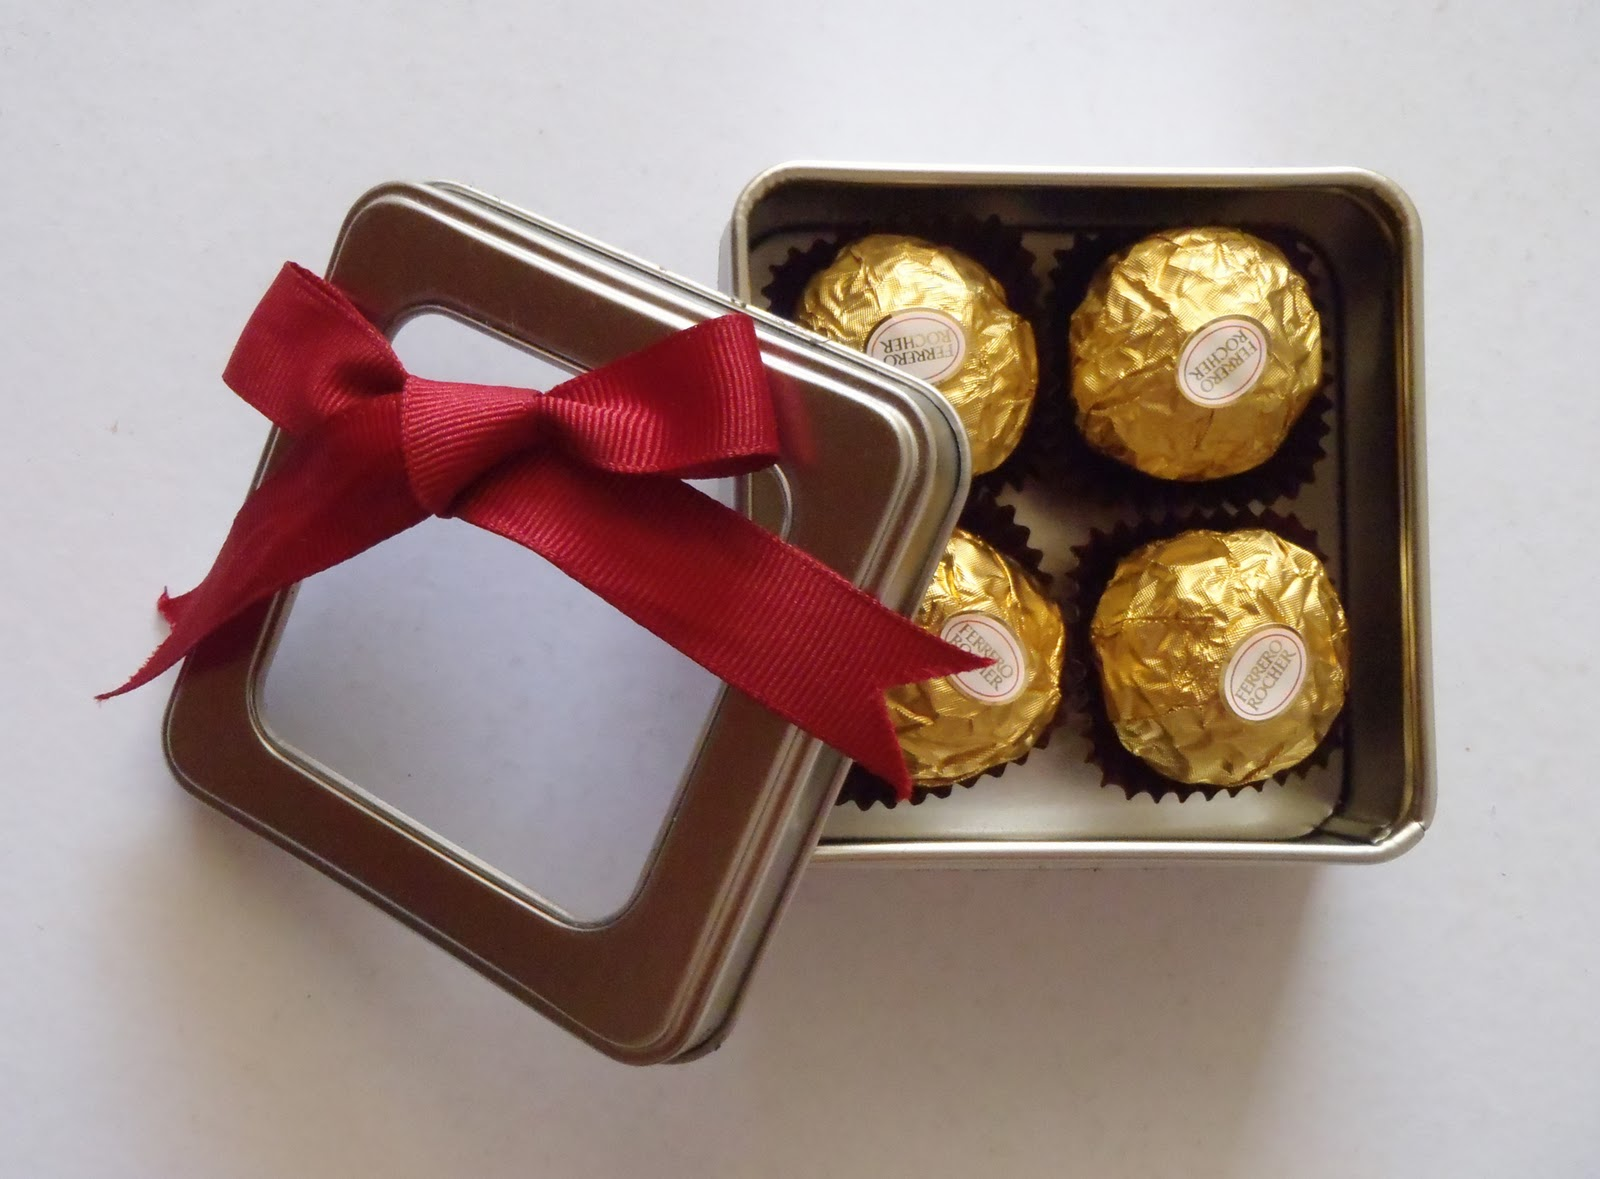 Chocolate For Wedding Door Gift : Door Gifts & As The Days Go By People Started To Change The Trend And ...